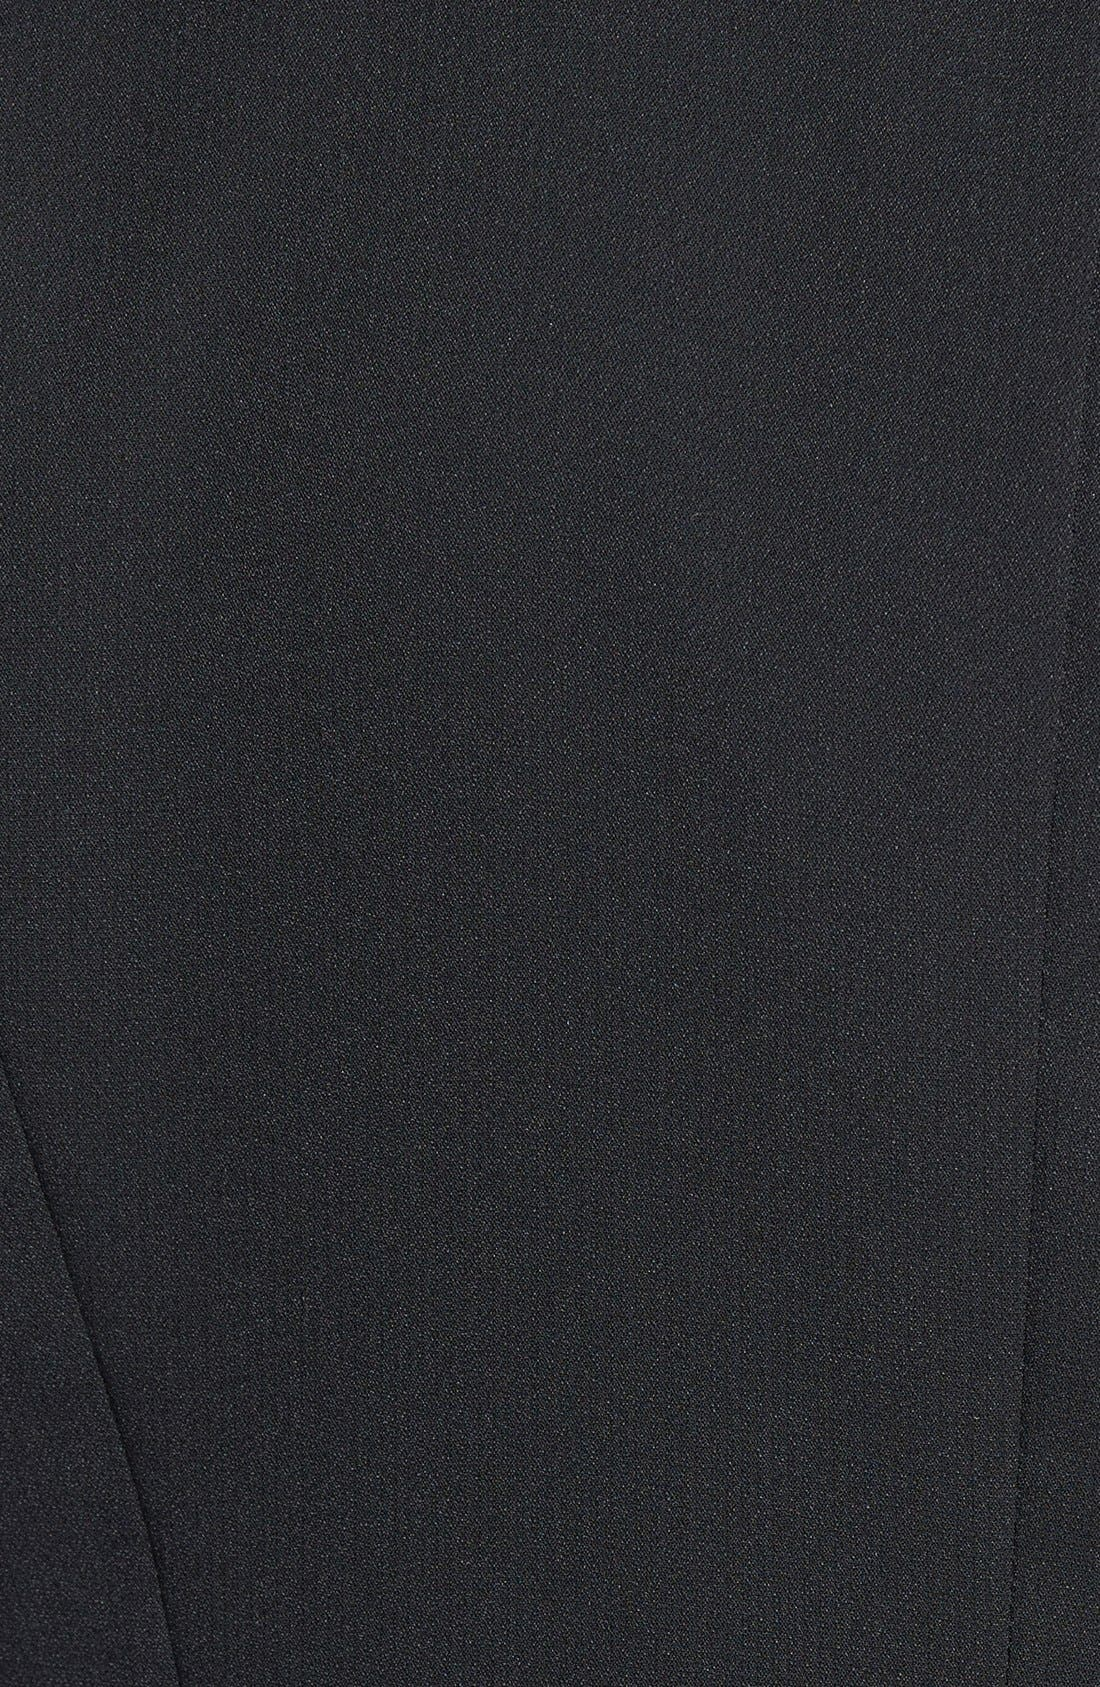 Drapey Zip Blazer,                             Alternate thumbnail 2, color,                             001